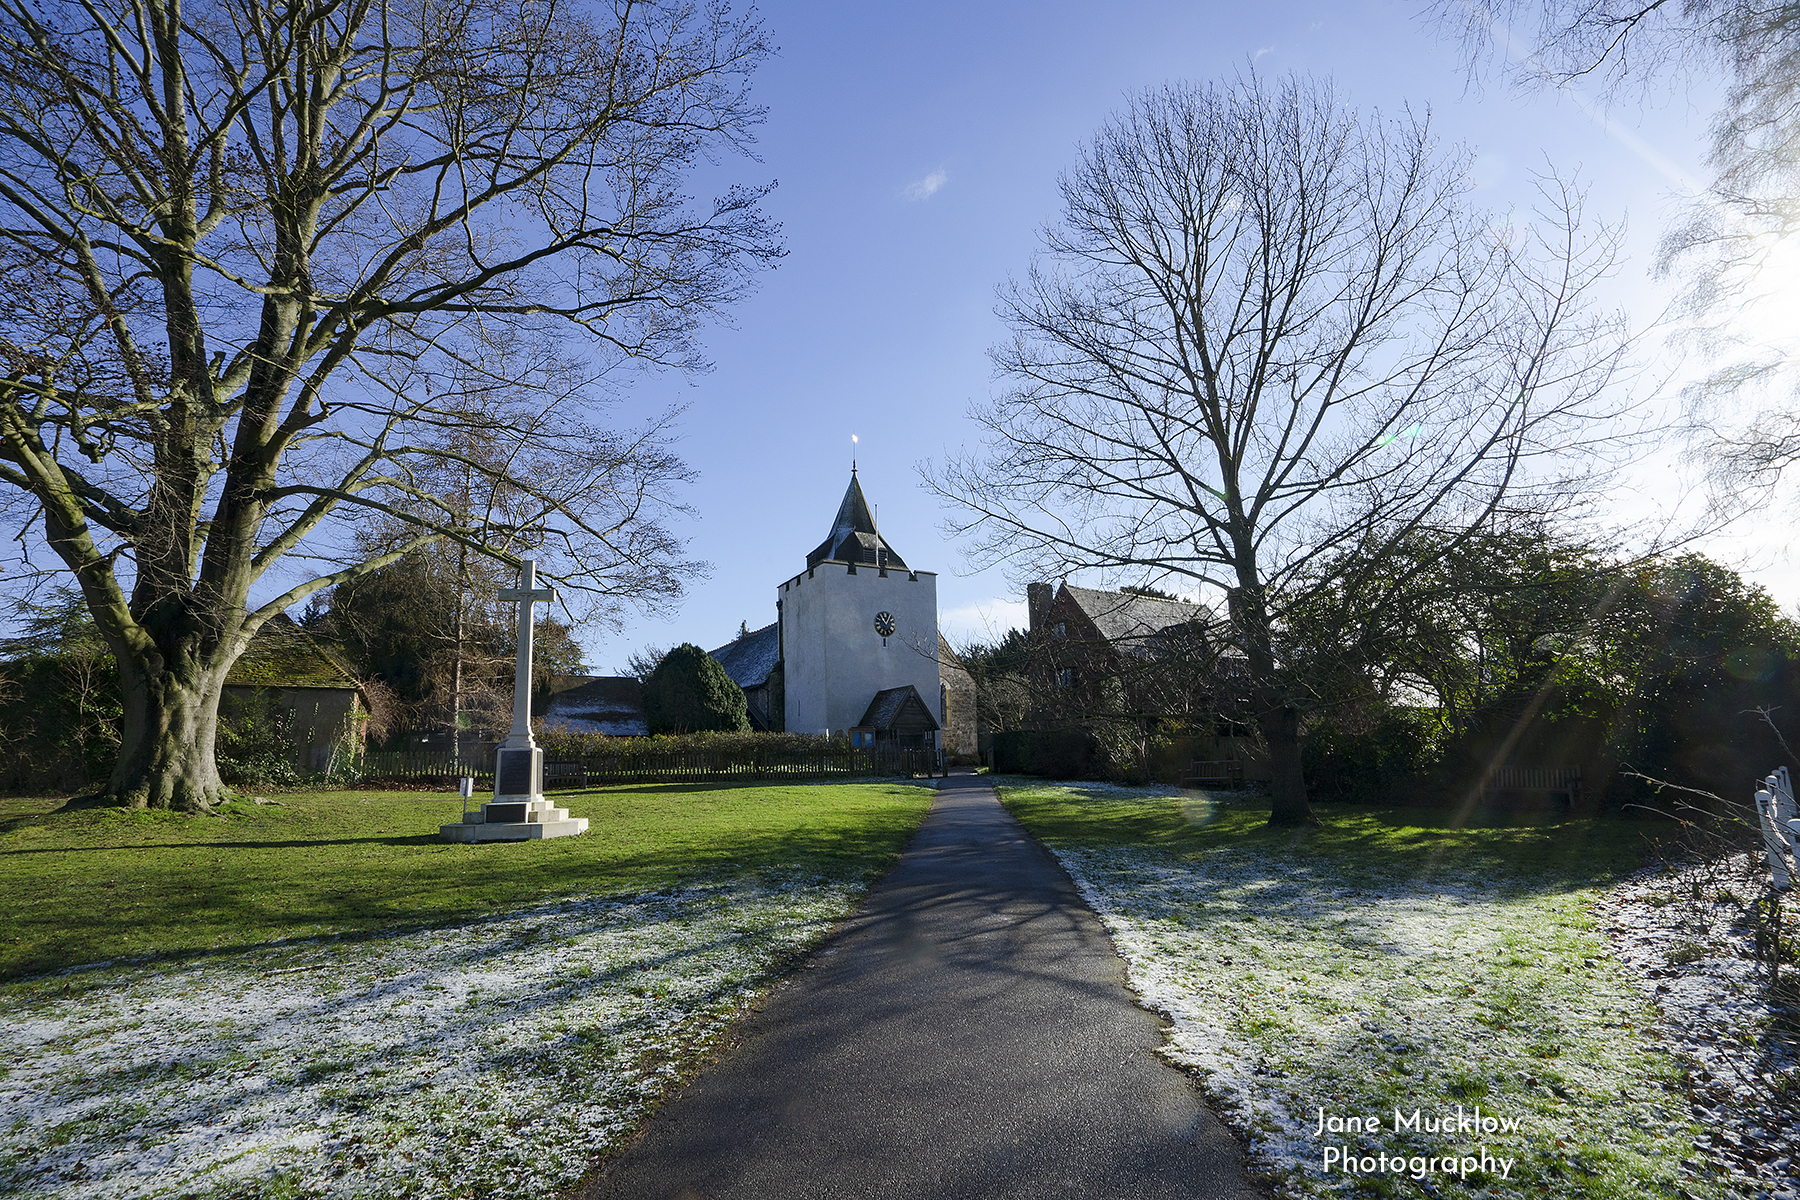 Photograph by Jane Mucklow of St. Bart's Otford, with a scattering of snow